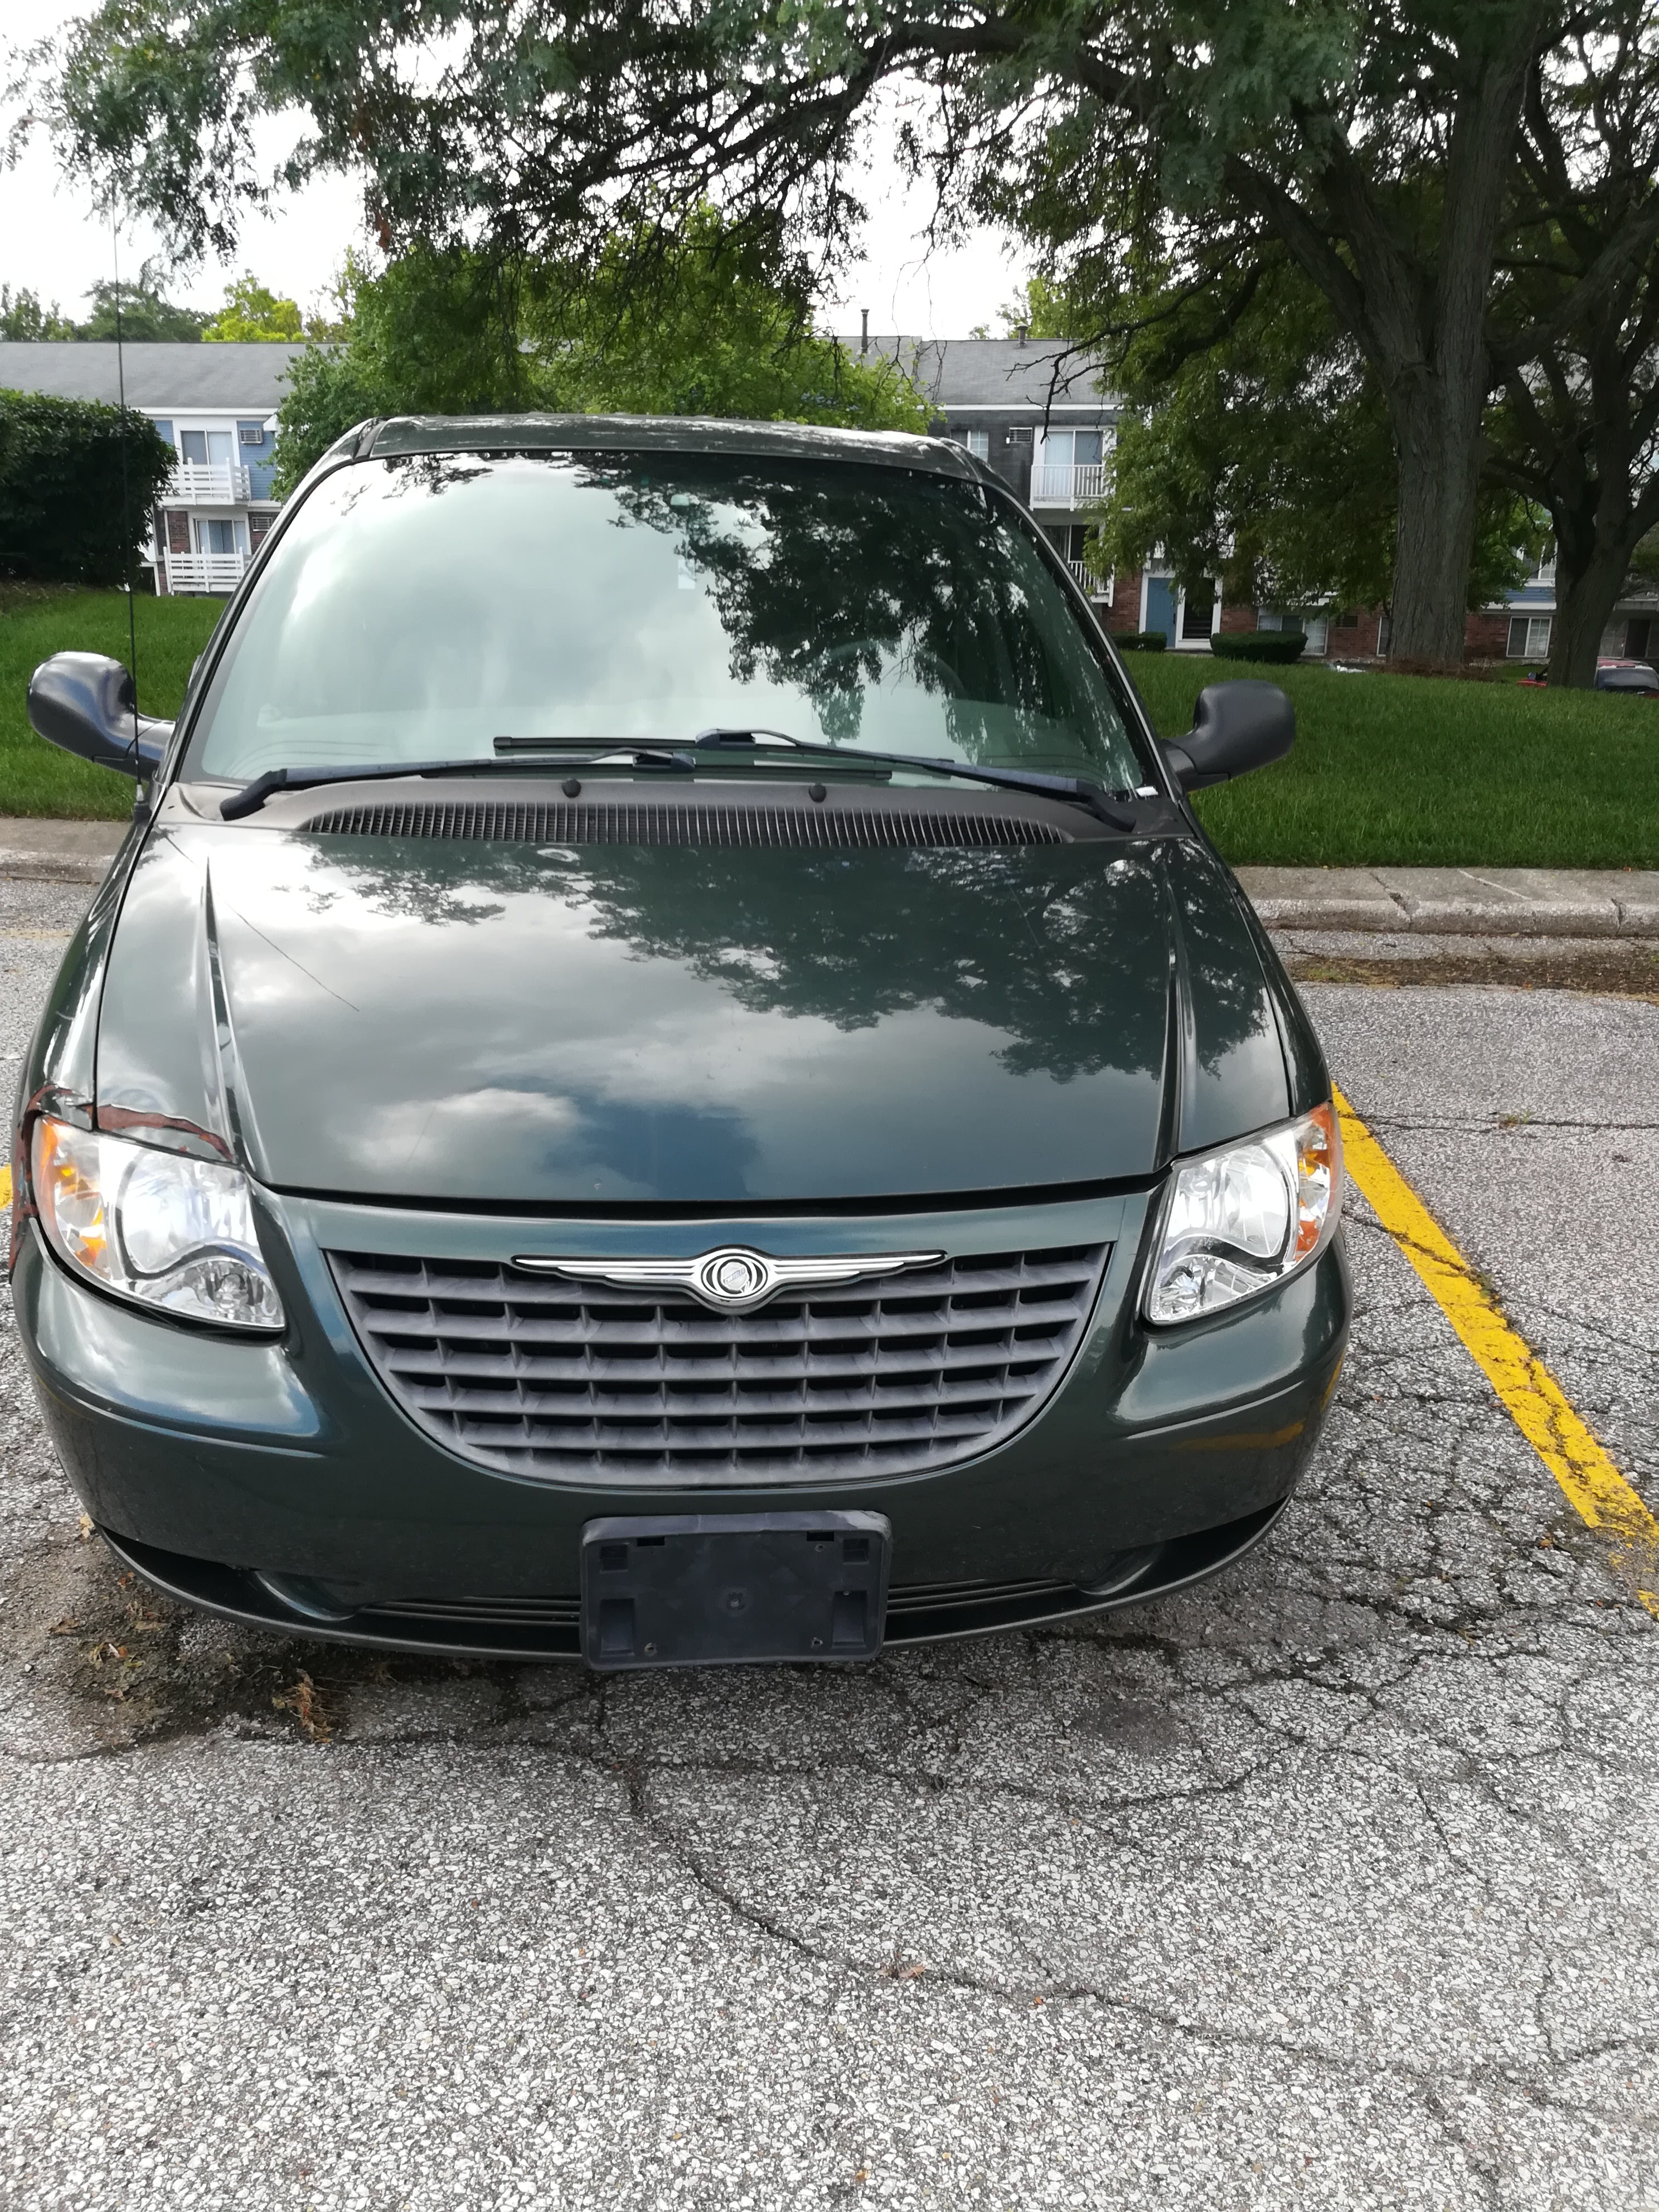 Junk 2001 Chrysler Voyager in South Bend